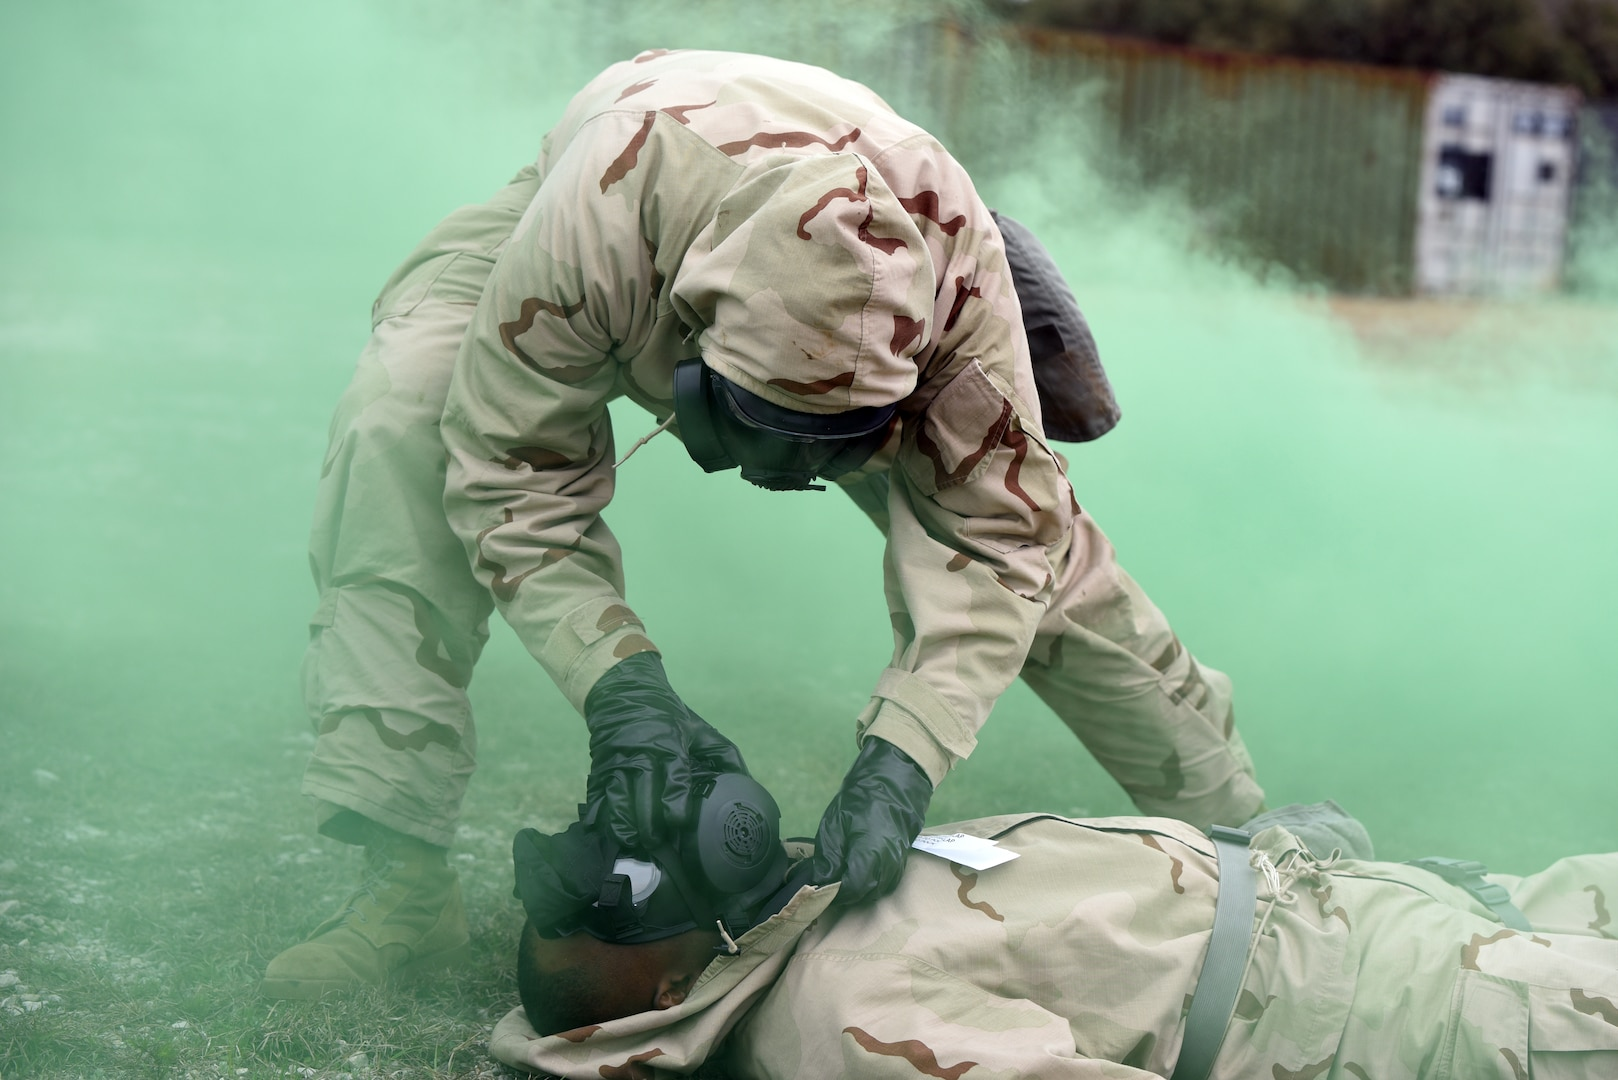 While training during a simulated Chemical, Biological, Radiological, and Nuclear, or CBRN, attack at Joint Base San Antonio-Camp Bullis, a Soldier checks a causality's Mission Oriented Protective Posture, or MOPP, mask.